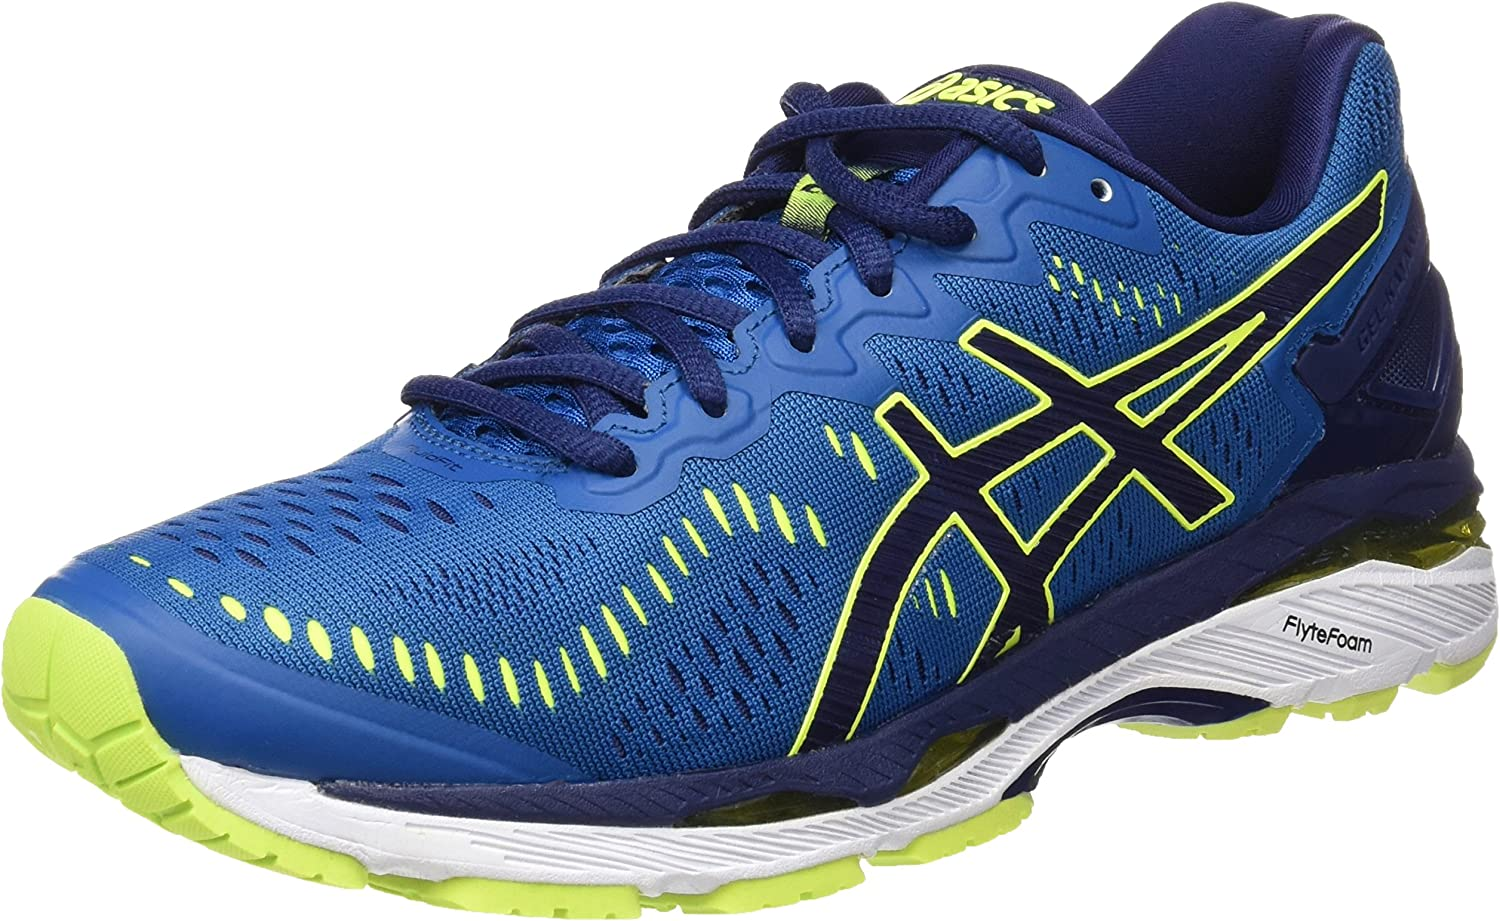 Asics T646N4907, Zapatillas de running para Hombre, color: Azul (Thunder Blue/Safety Yellow/Indigo Blue) , 48.5 EU: Amazon.es: Zapatos y complementos